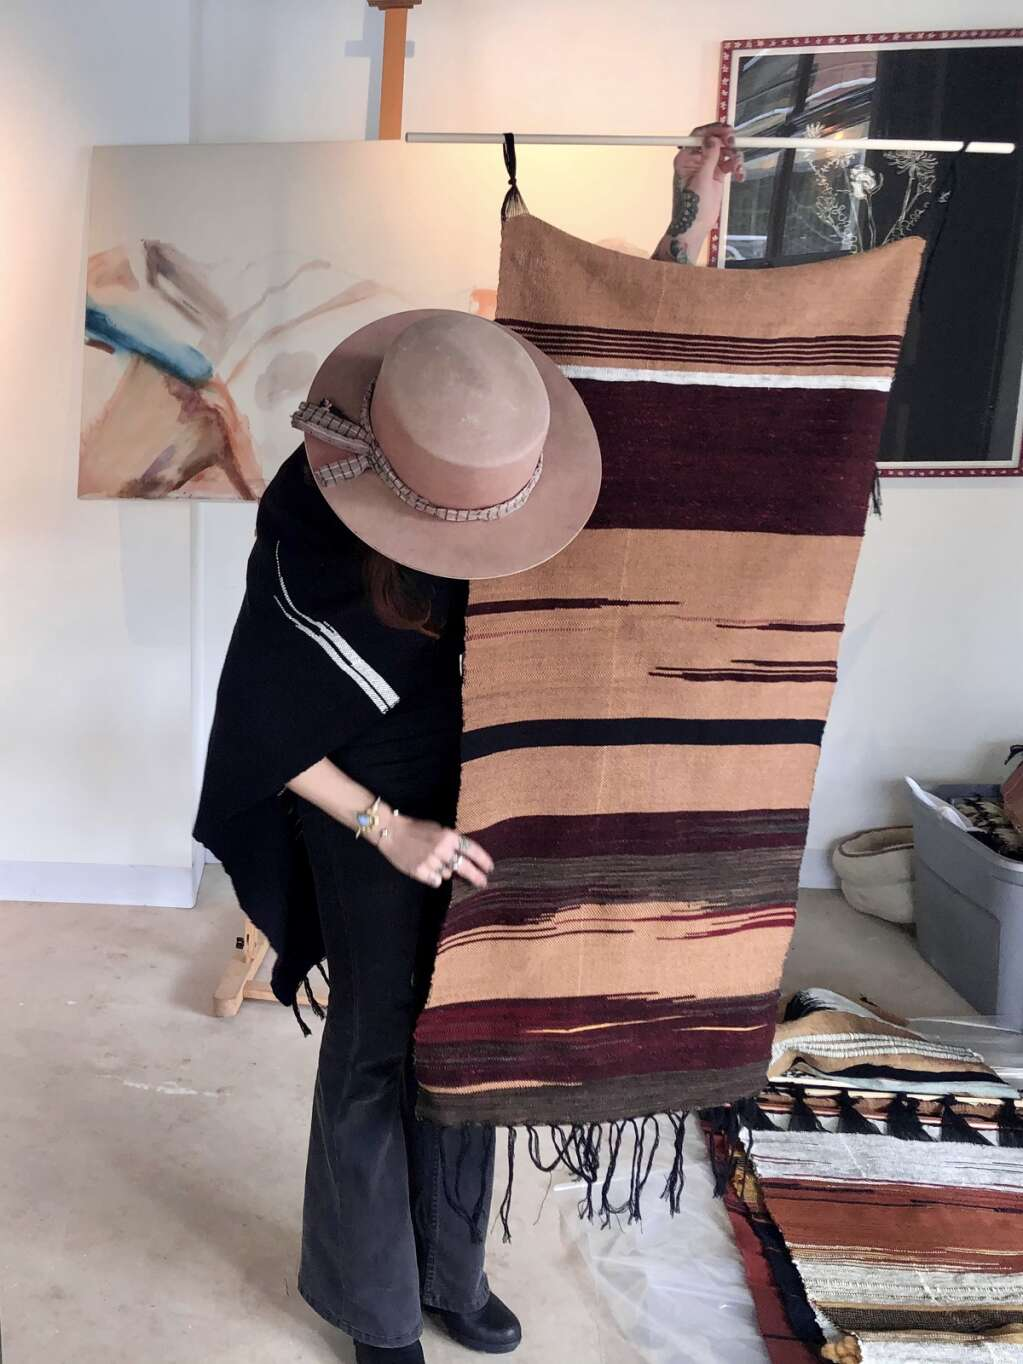 Artist Nina Pivirotto shows off a textile work inspired by the colors of Ruedi Resevoir at Straight Line Studio in Snowmass Base Village on March 15, 2021. | Kaya Williams/The Snowmass Sun